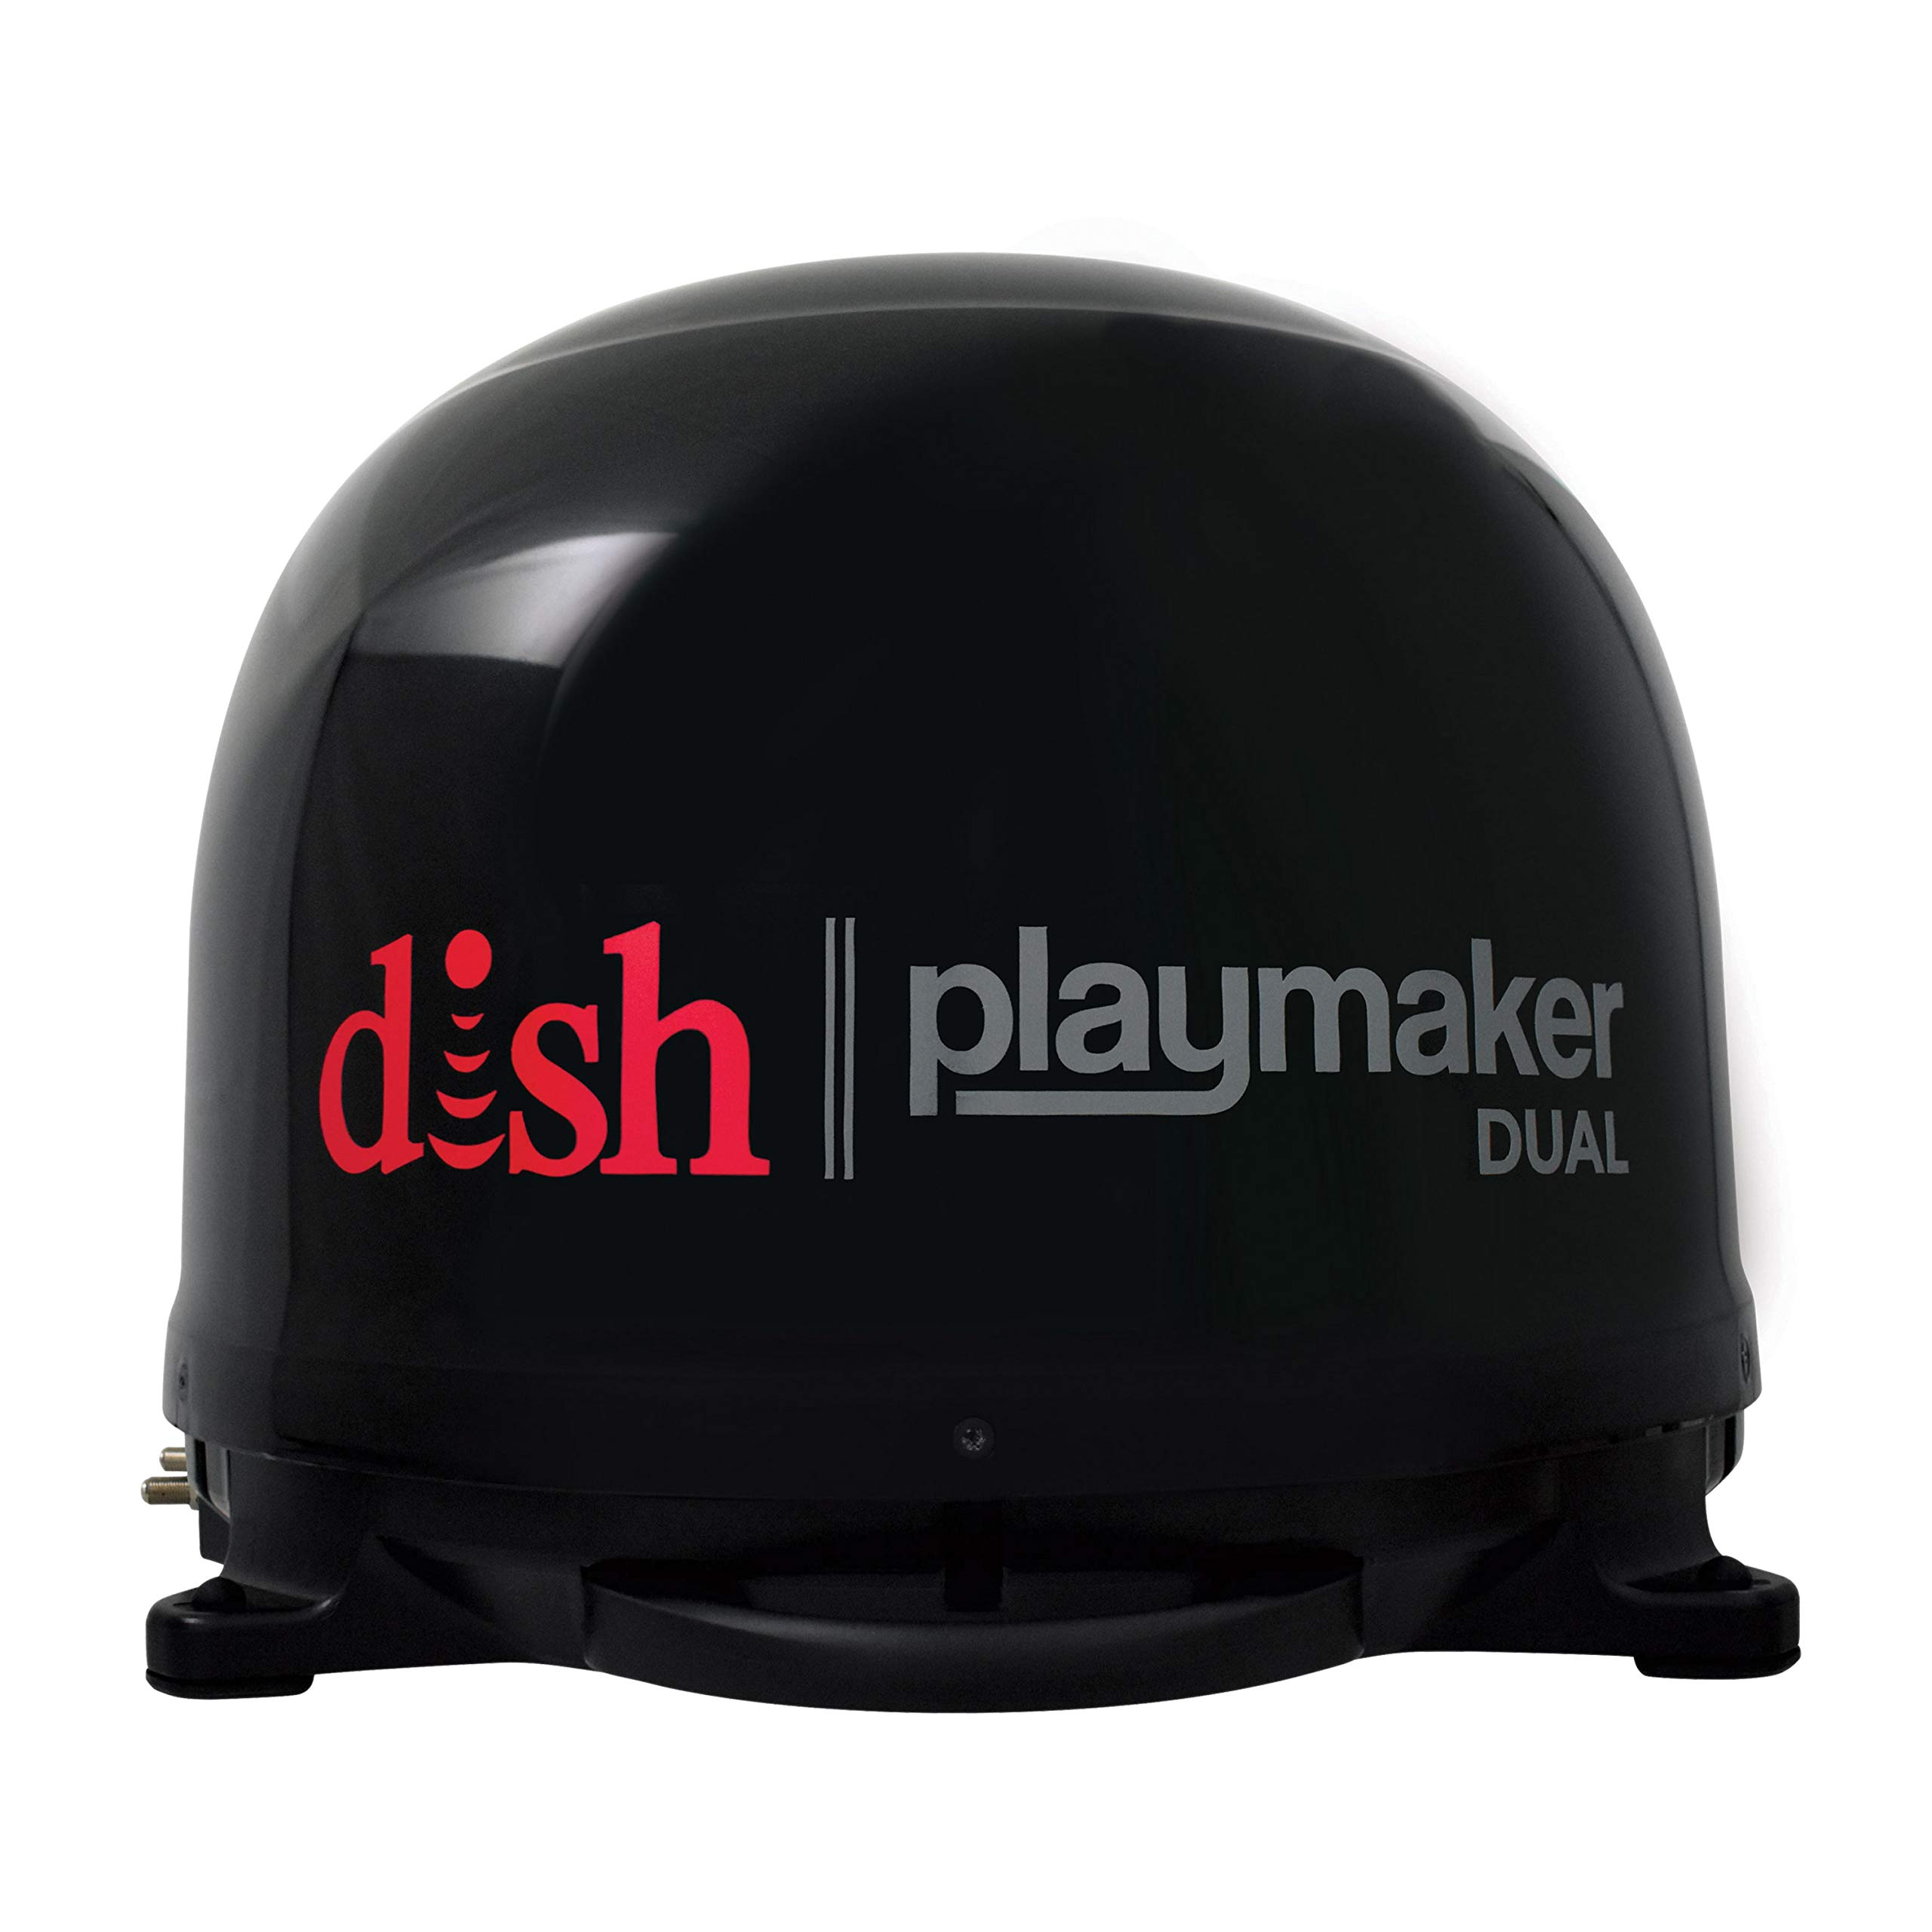 Winegard Company Black PL-8035 Dish Playmaker